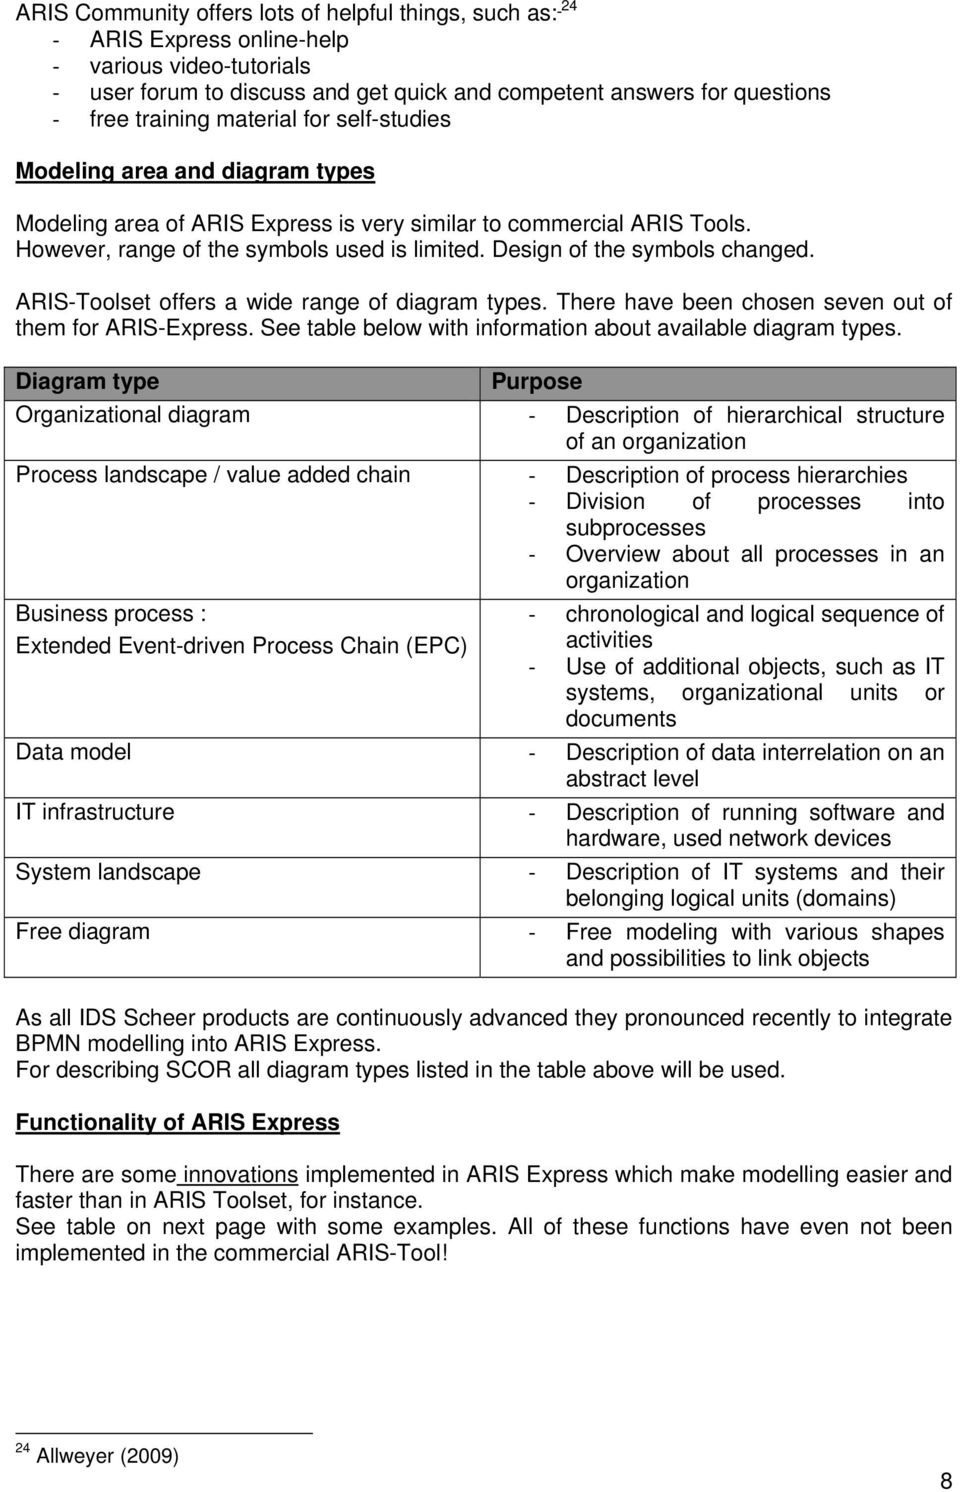 Mit aris express zum scor referenzmodell pdf design of the symbols changed aris toolset offers a wide range of diagram types ccuart Image collections